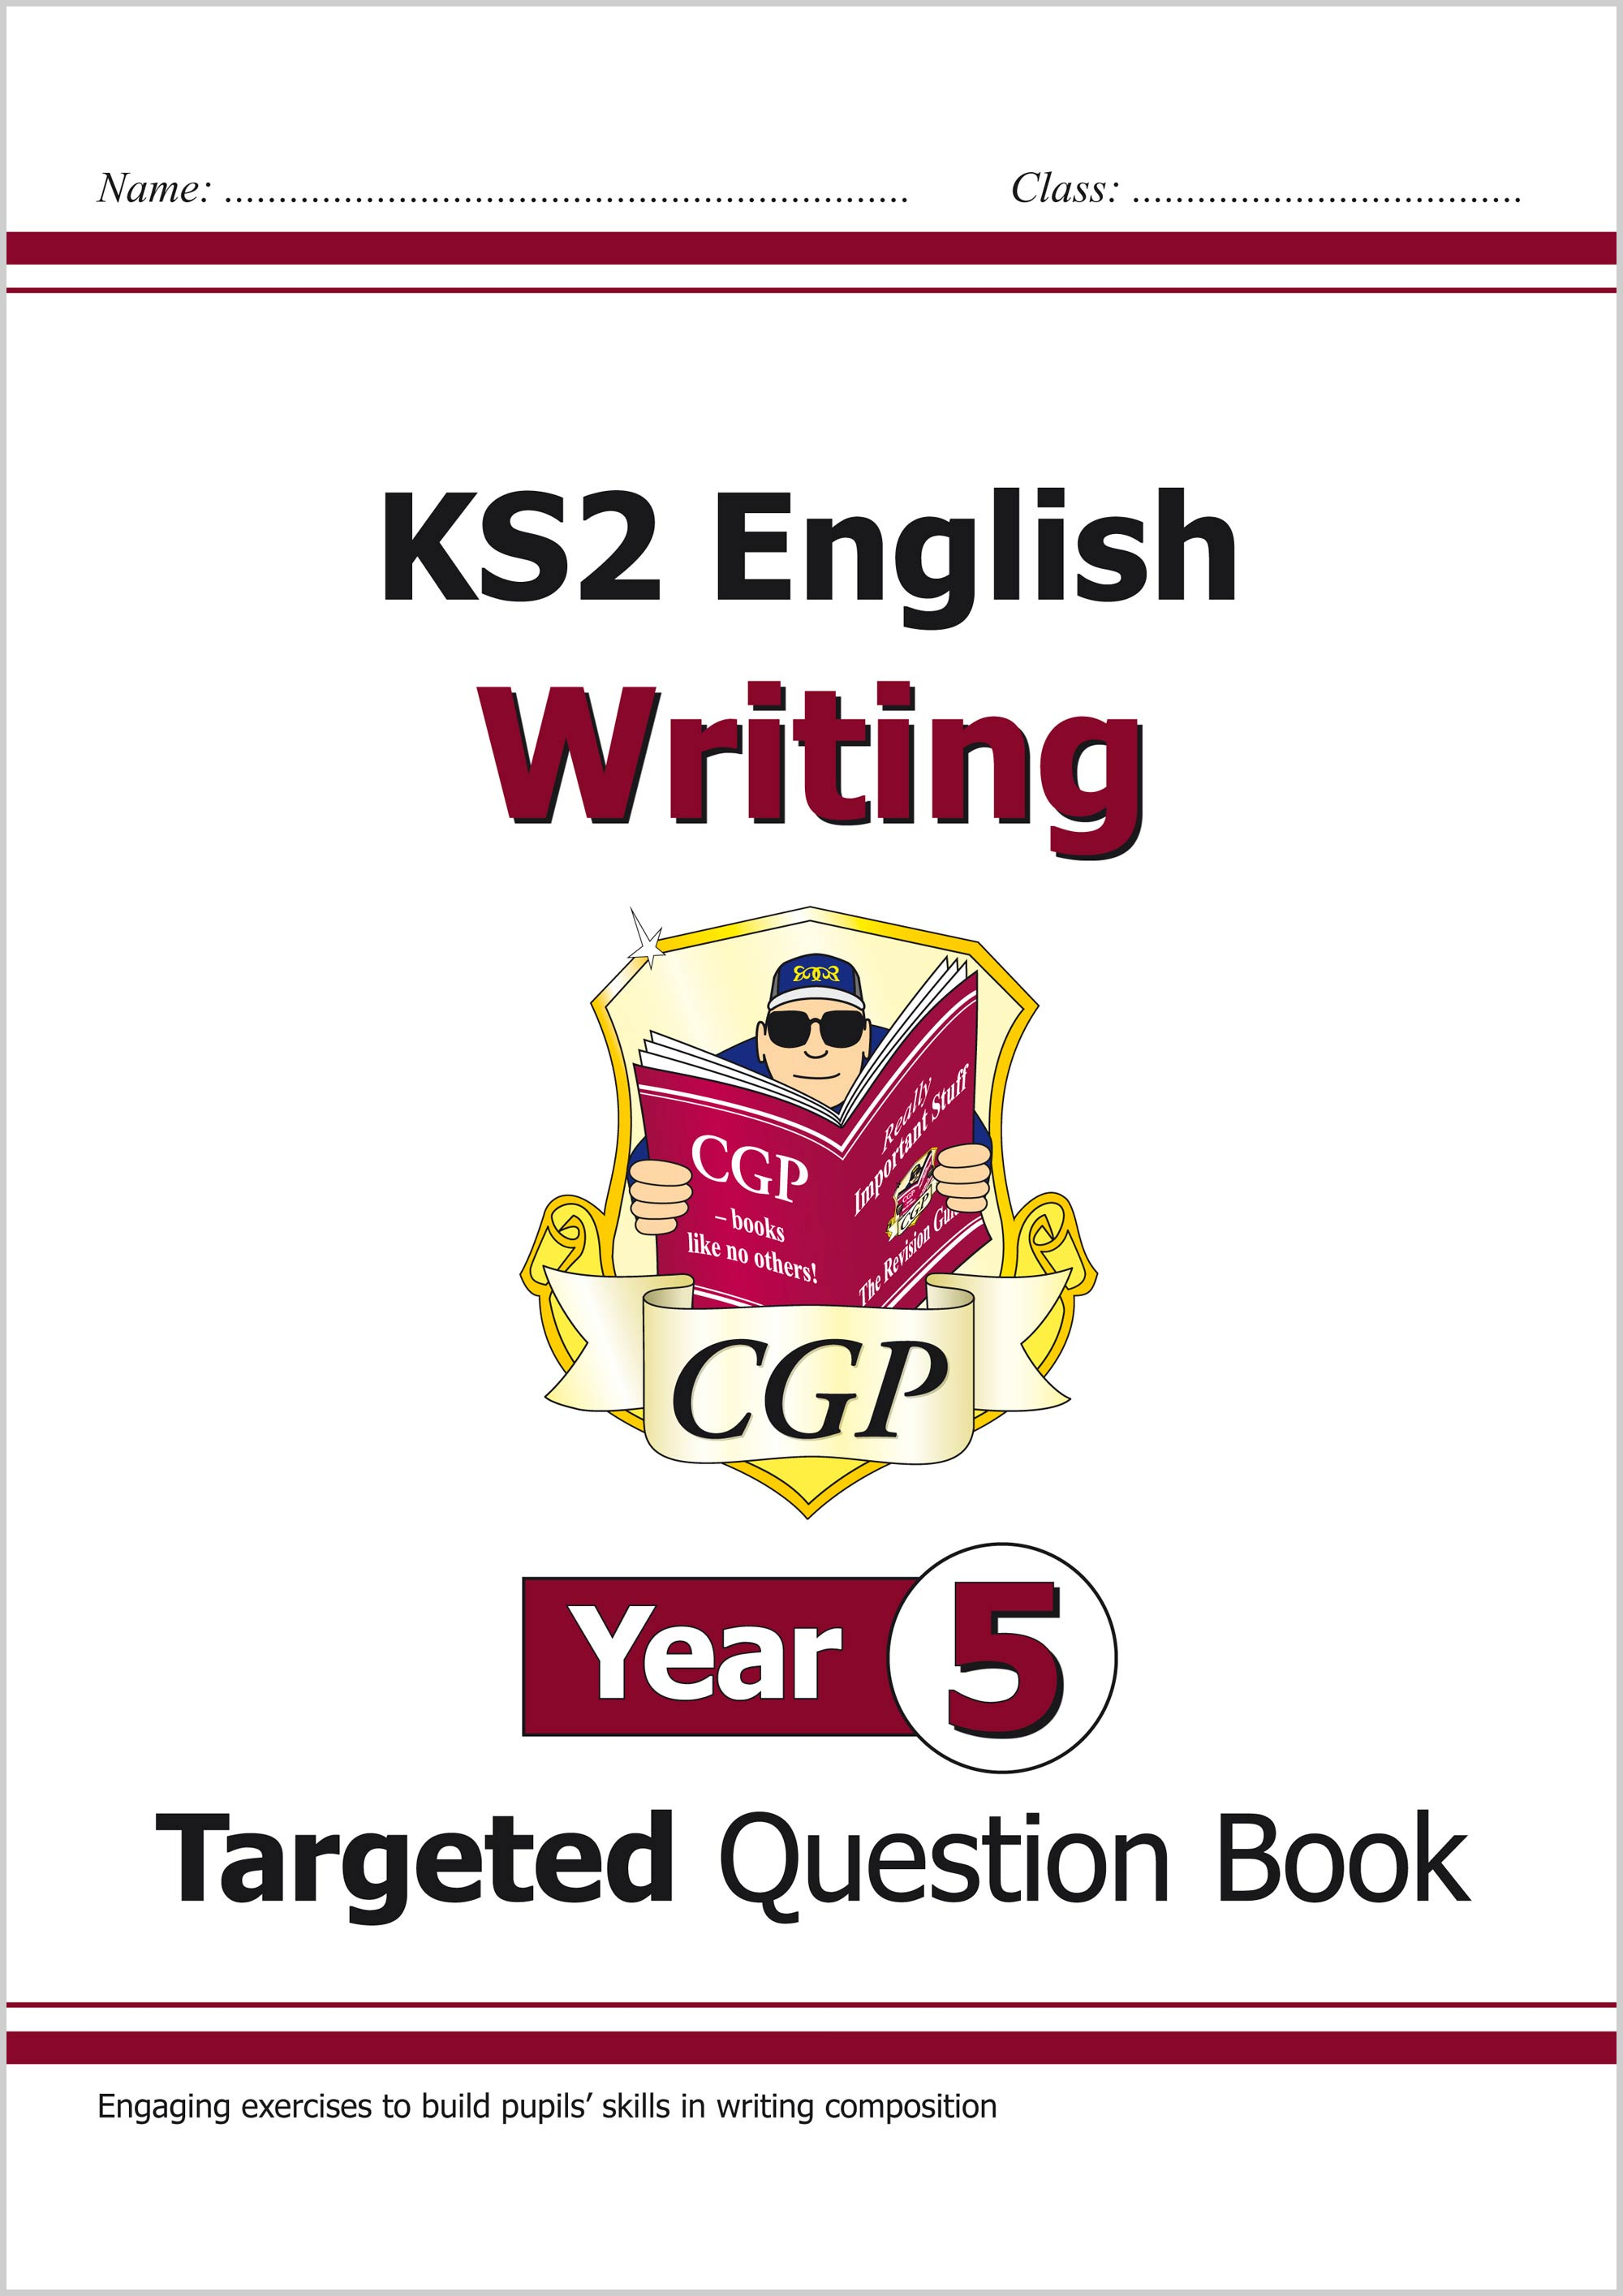 E5WW21 - KS2 English Writing Targeted Question Book - Year 5